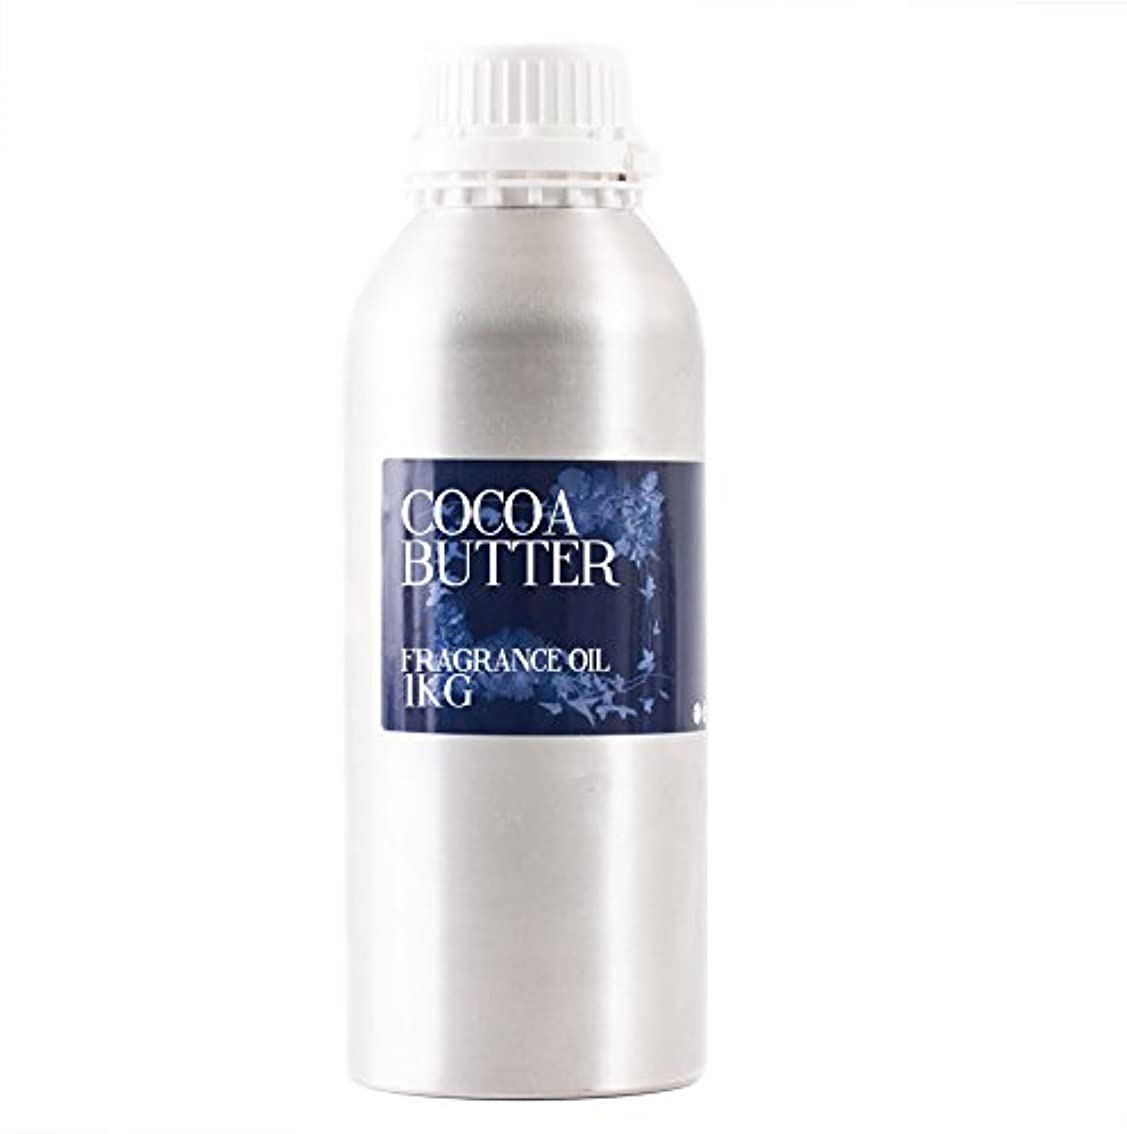 Mystic Moments | Cocoa Butter Fragrance Oil - 1Kg